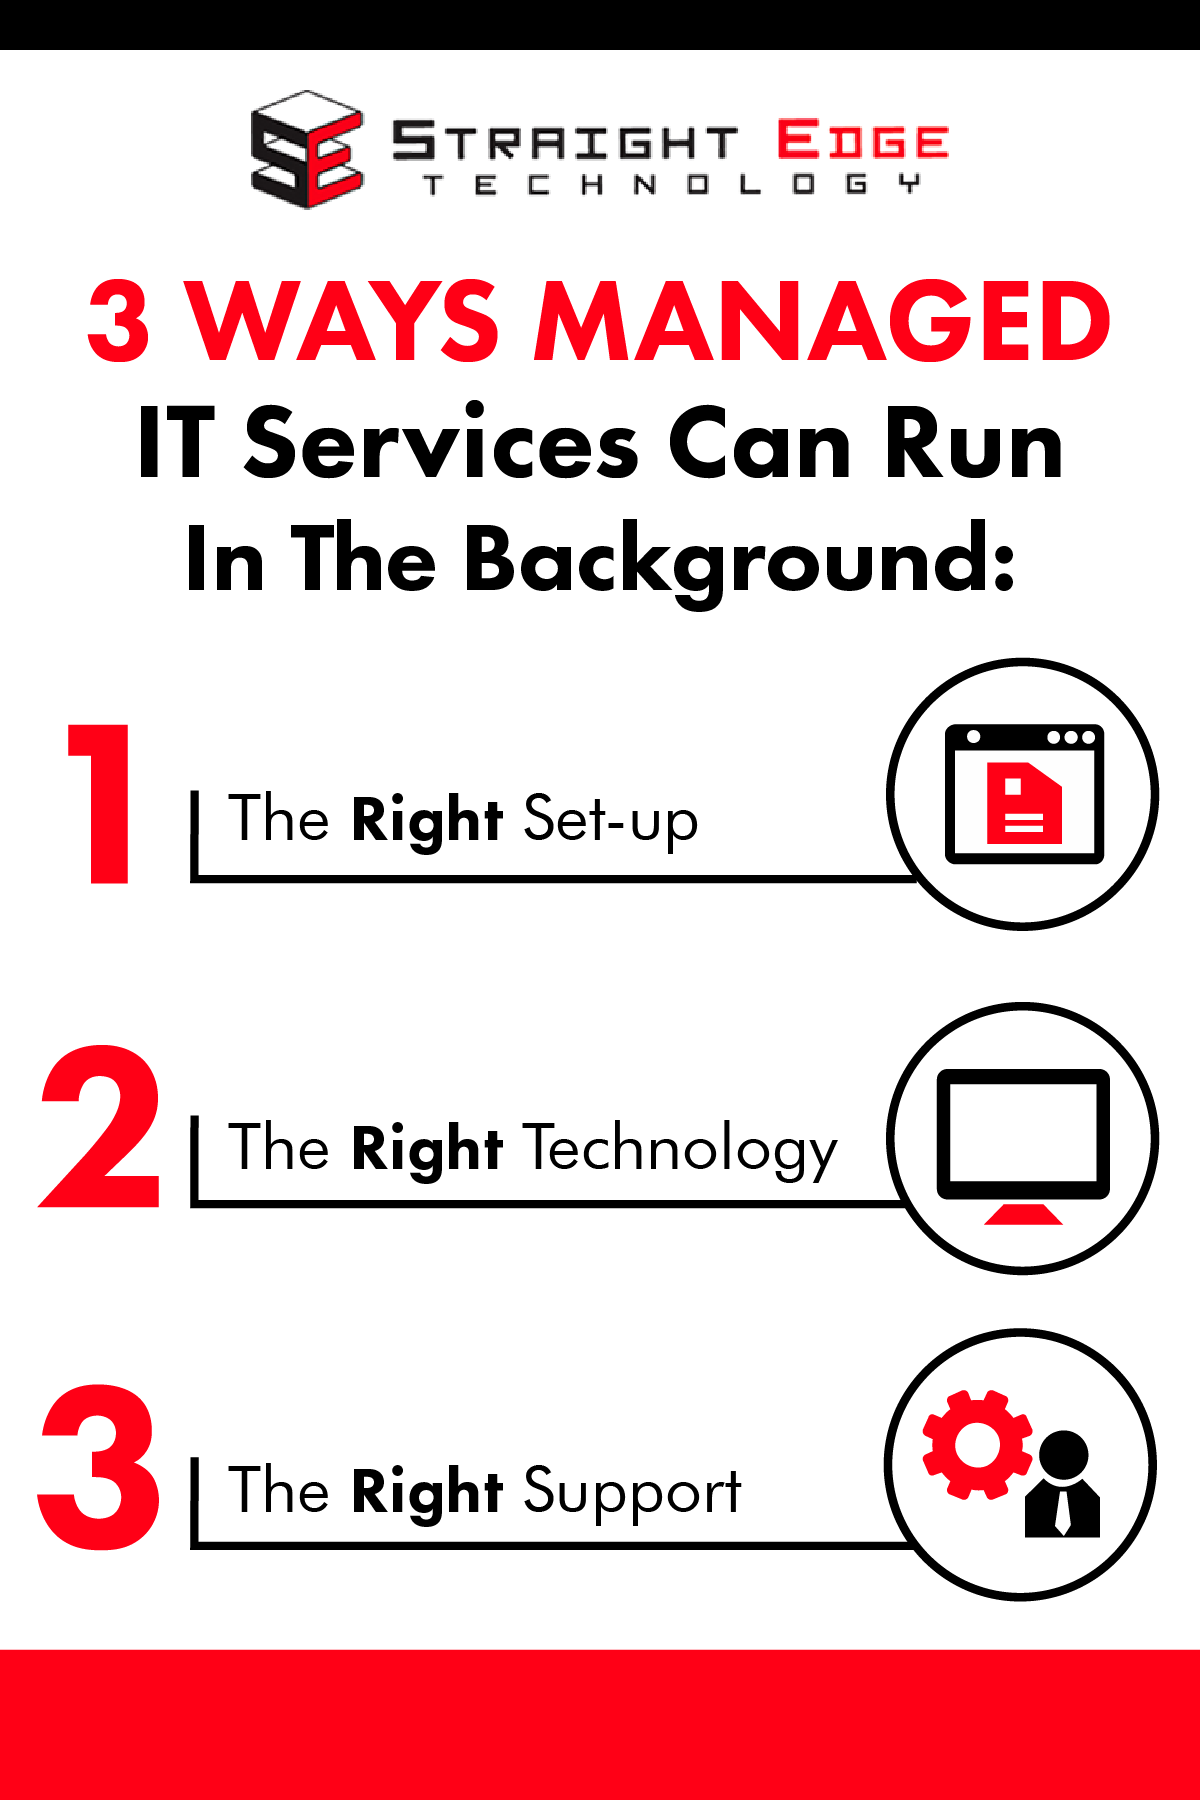 What Allows Managed IT Services to Run in the Background? 2